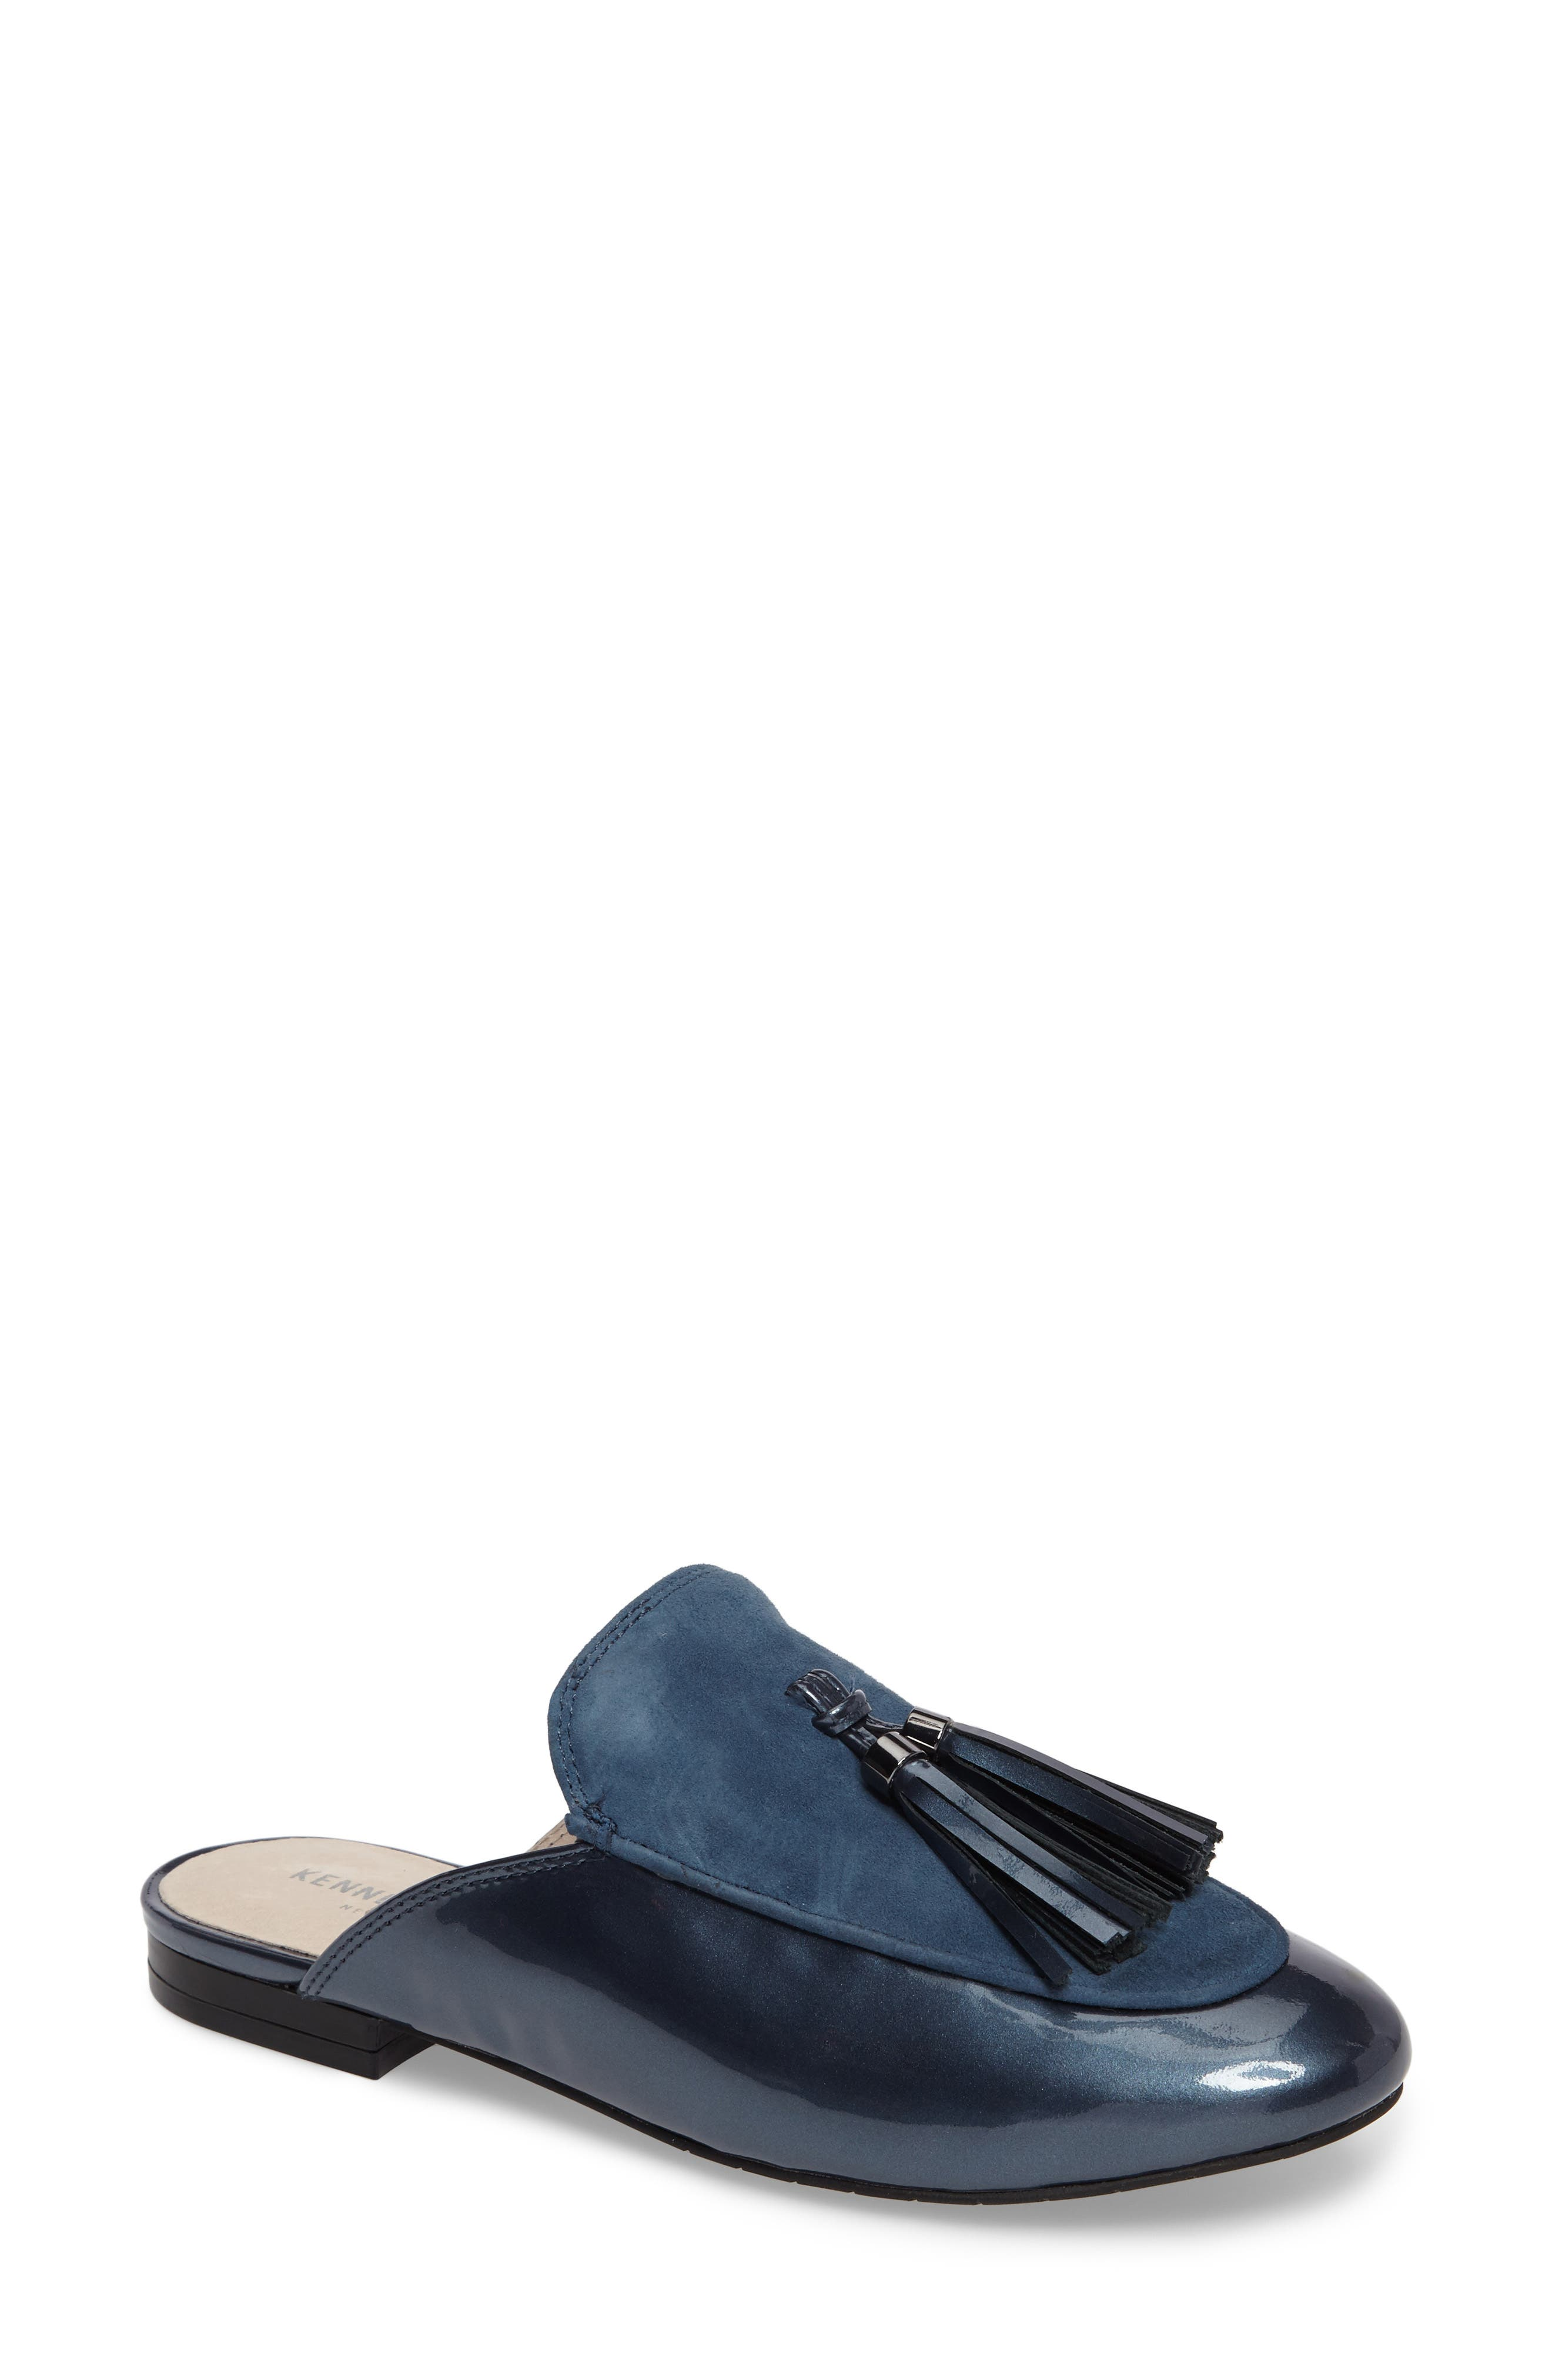 Whinnie Loafer Mule,                         Main,                         color, Indigo Patent Leather